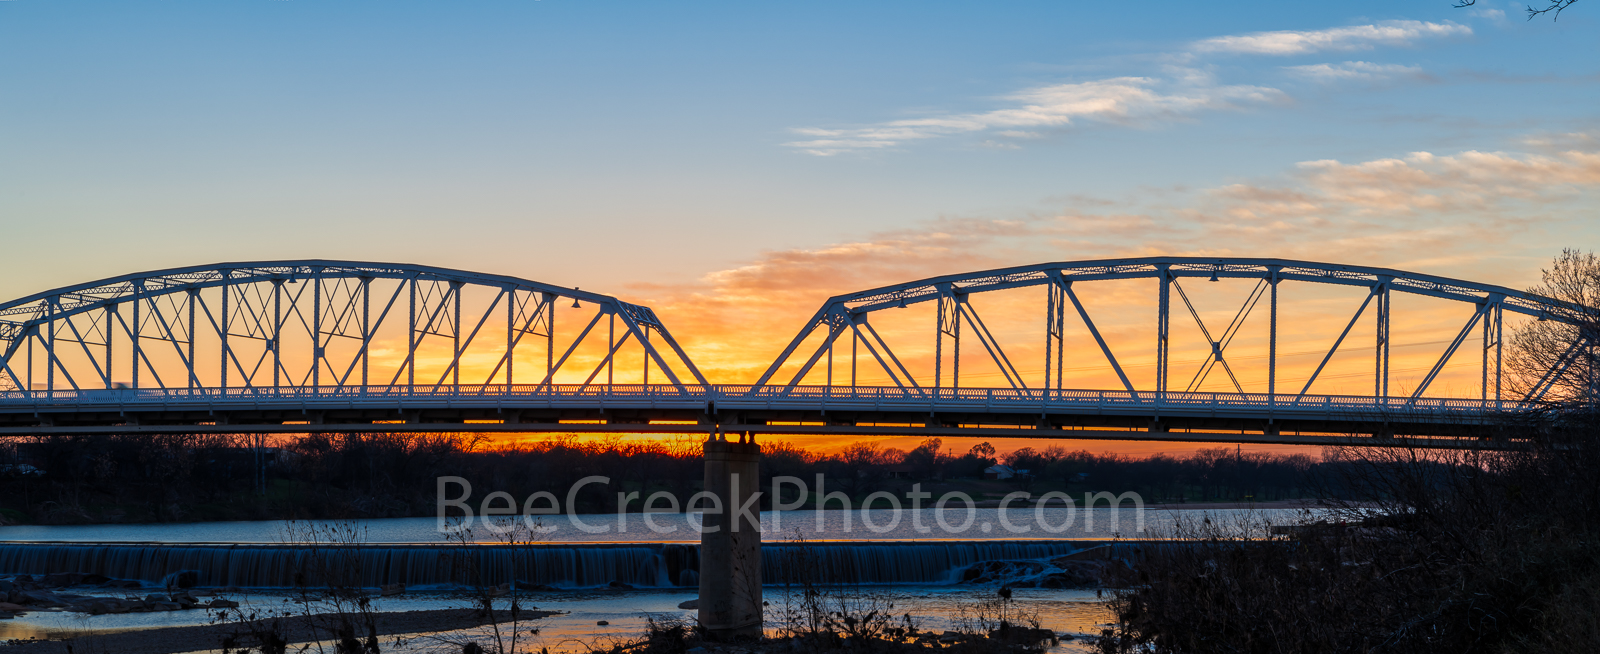 Sunset at Llano Bridge Pano - The Llano bridge pano in the Texas Hill Country as the sunset in the west. The Llano river runs...